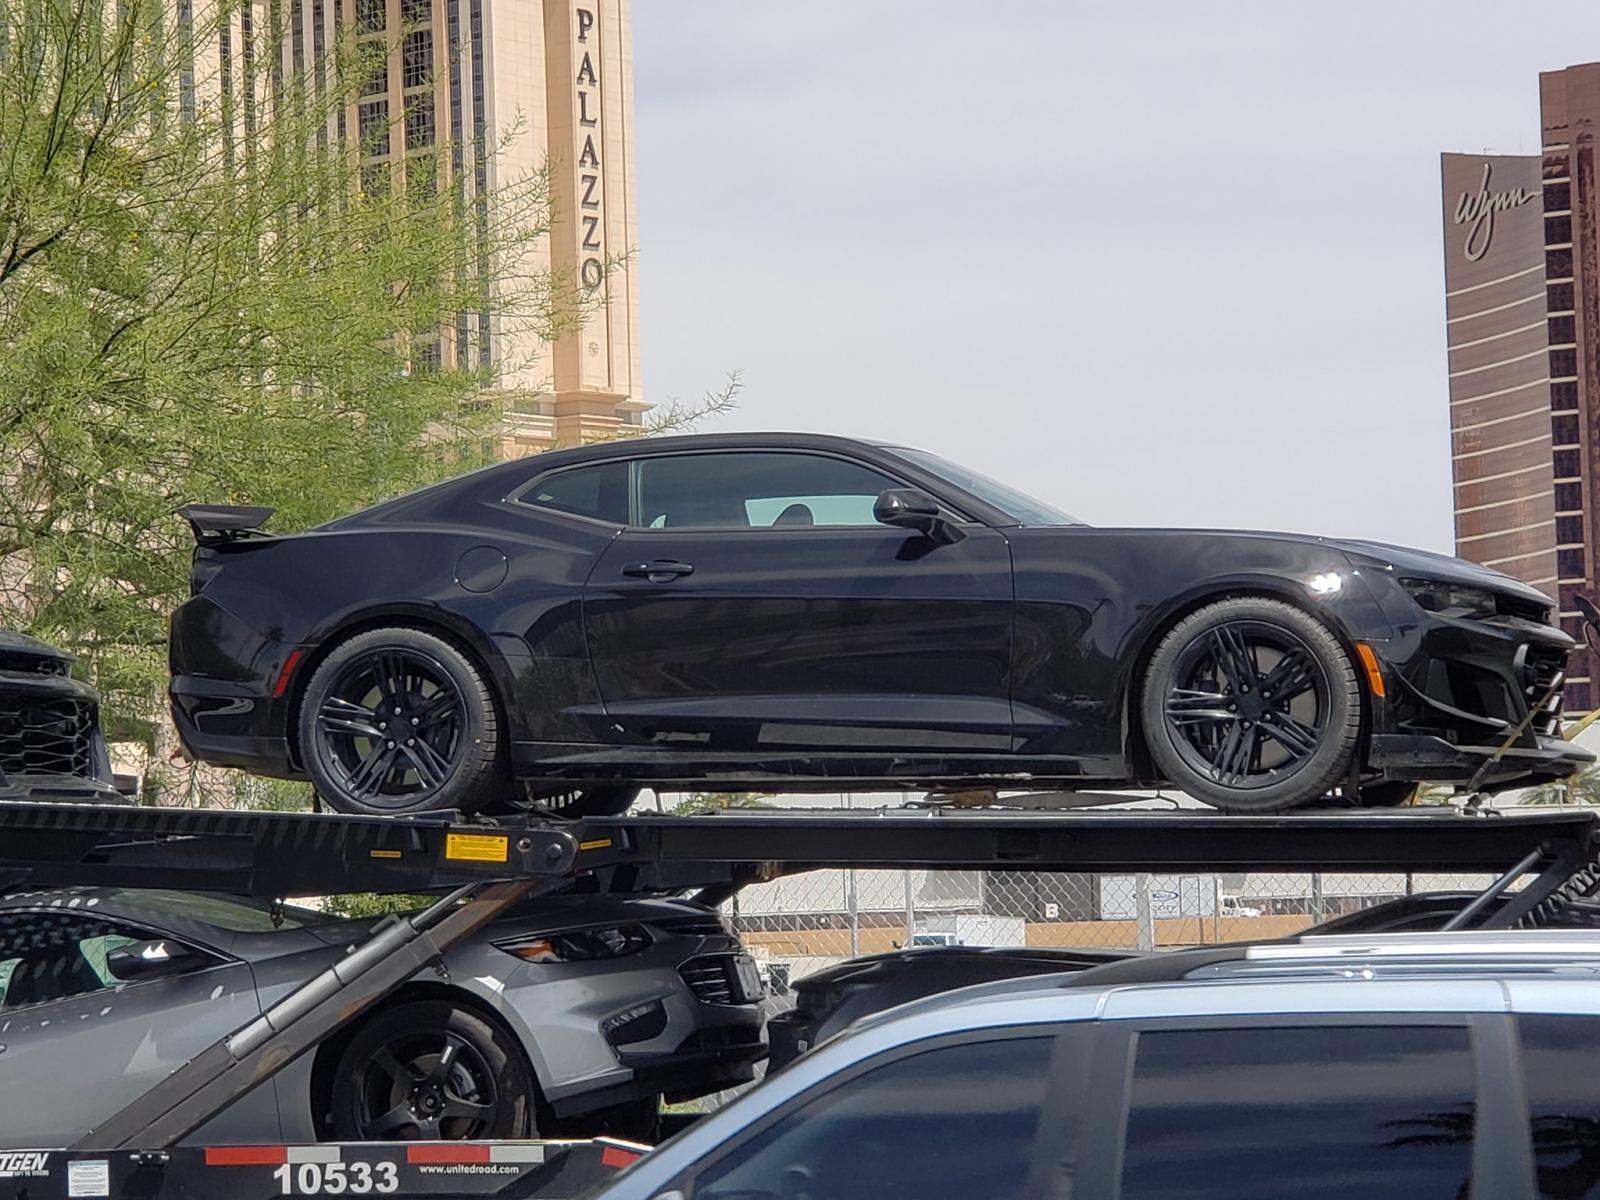 2019 Chevrolet Camaro ZL1 Spotted in Las Vegas - GM Inside ...